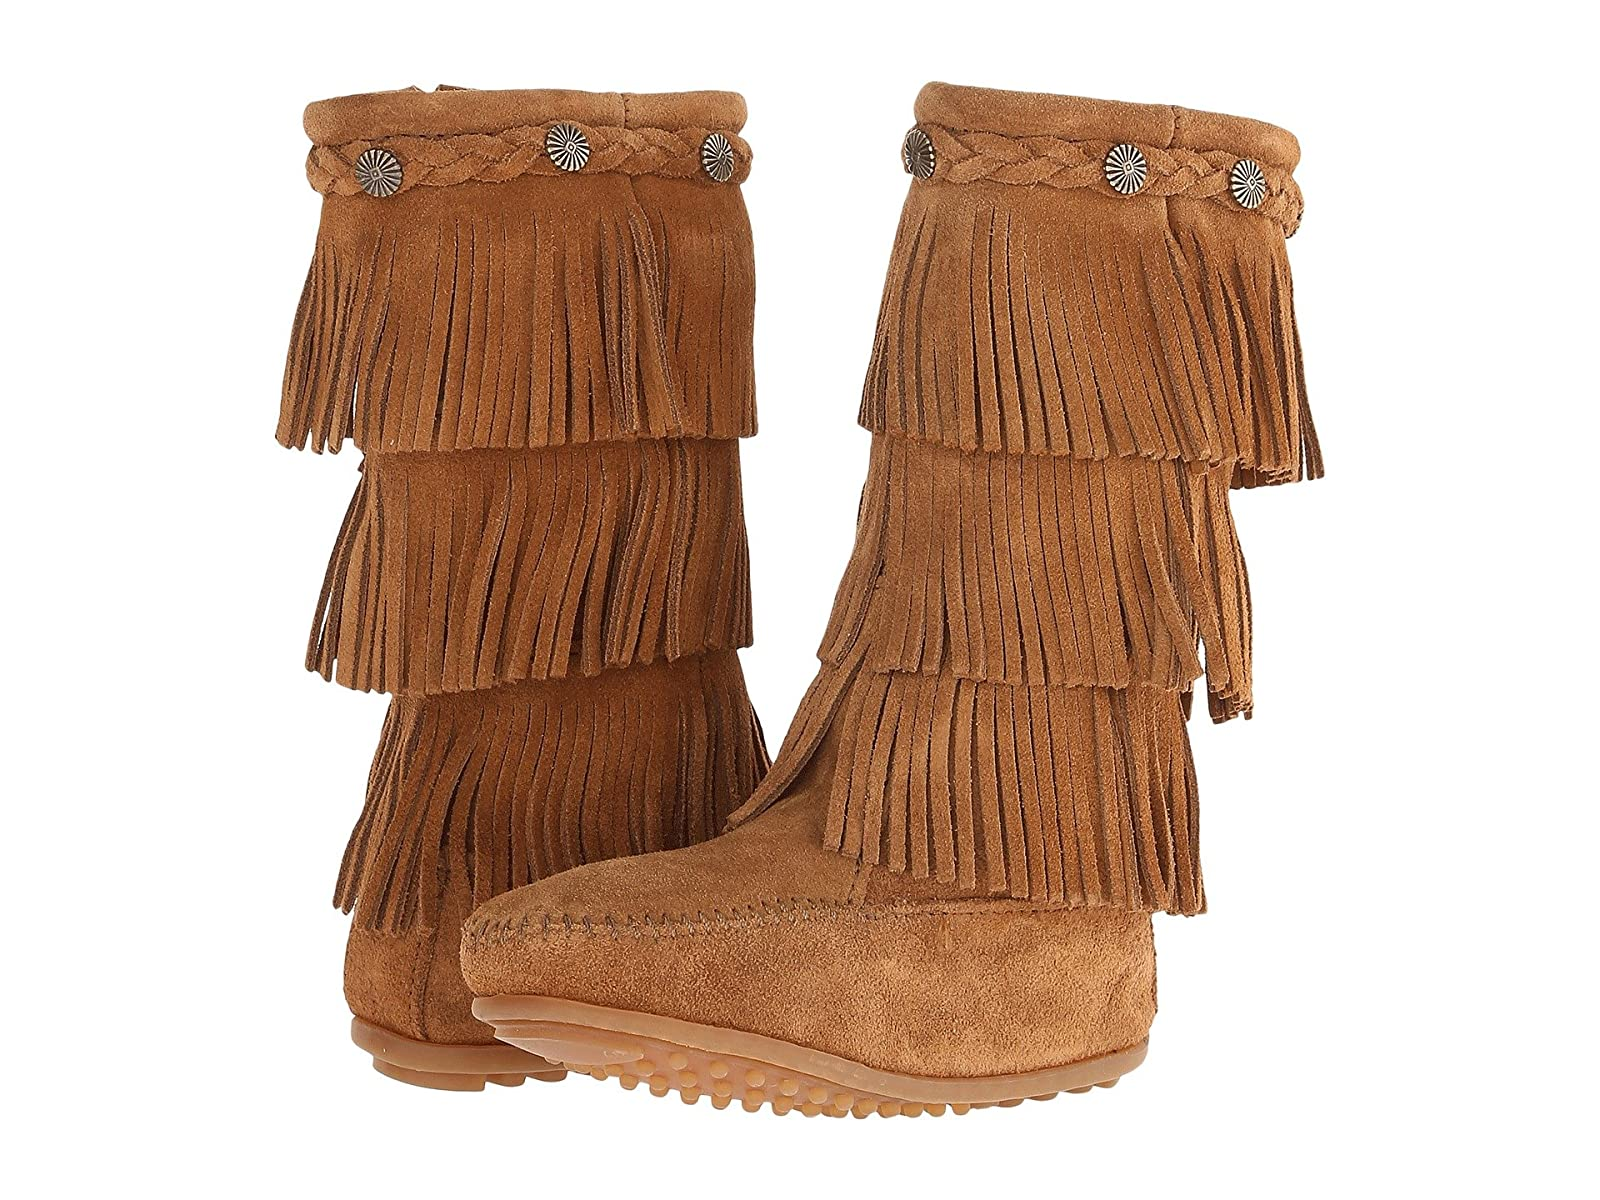 Minnetonka Kids 3-Layer Fringe Boot (Toddler/Little Kid/Big Kid)Economical and quality shoes